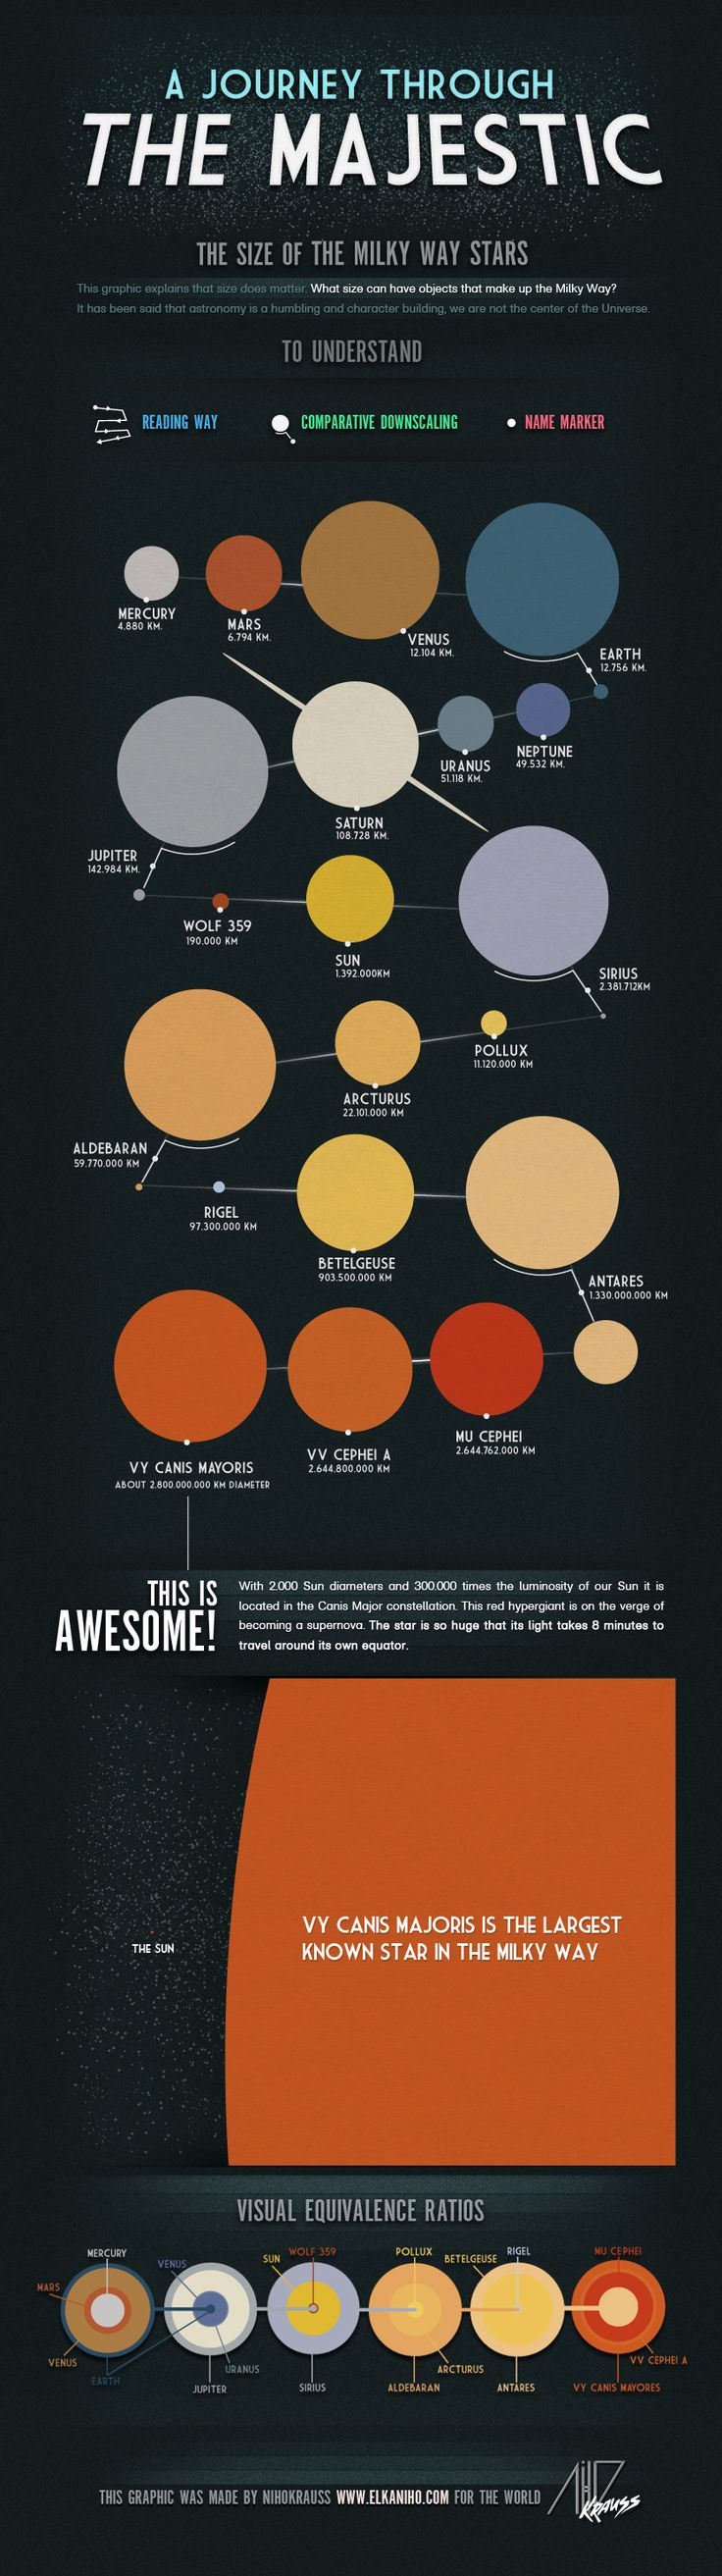 Superb infographic about the stupendous size of the biggest stars in just the Milky Way Galaxy.